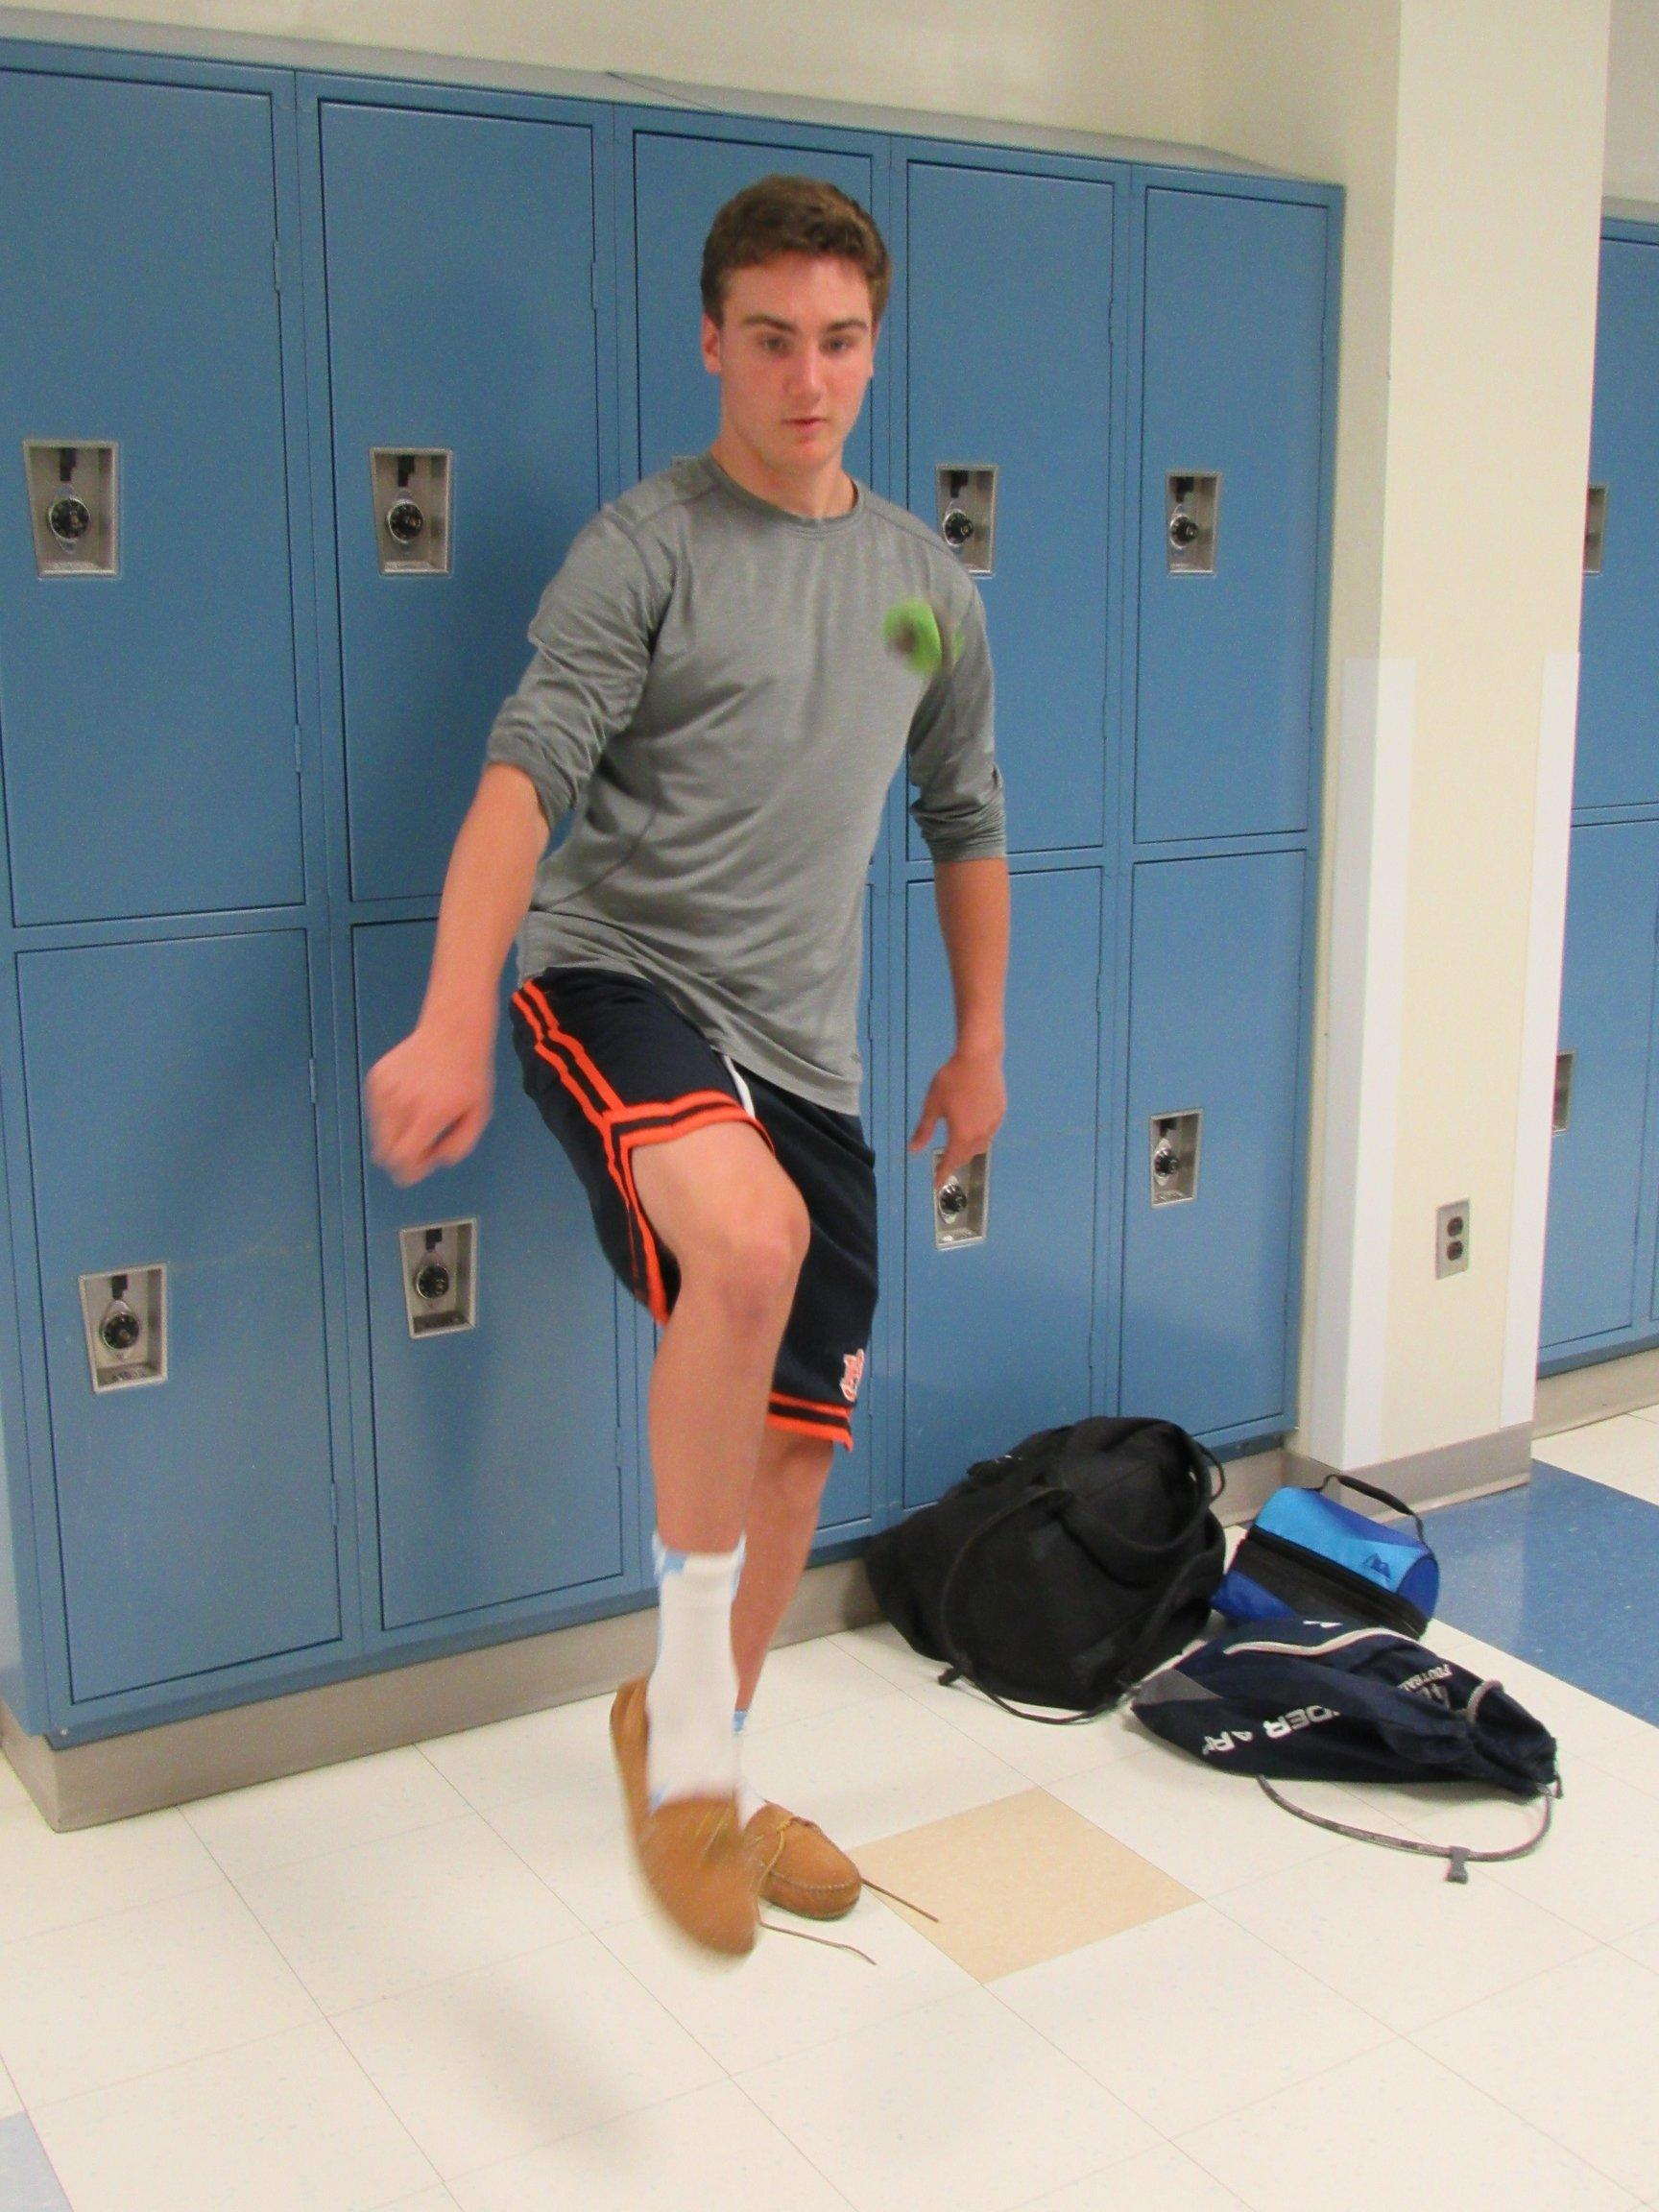 Junior Johnathan Best plays hacky sack during his lunch period